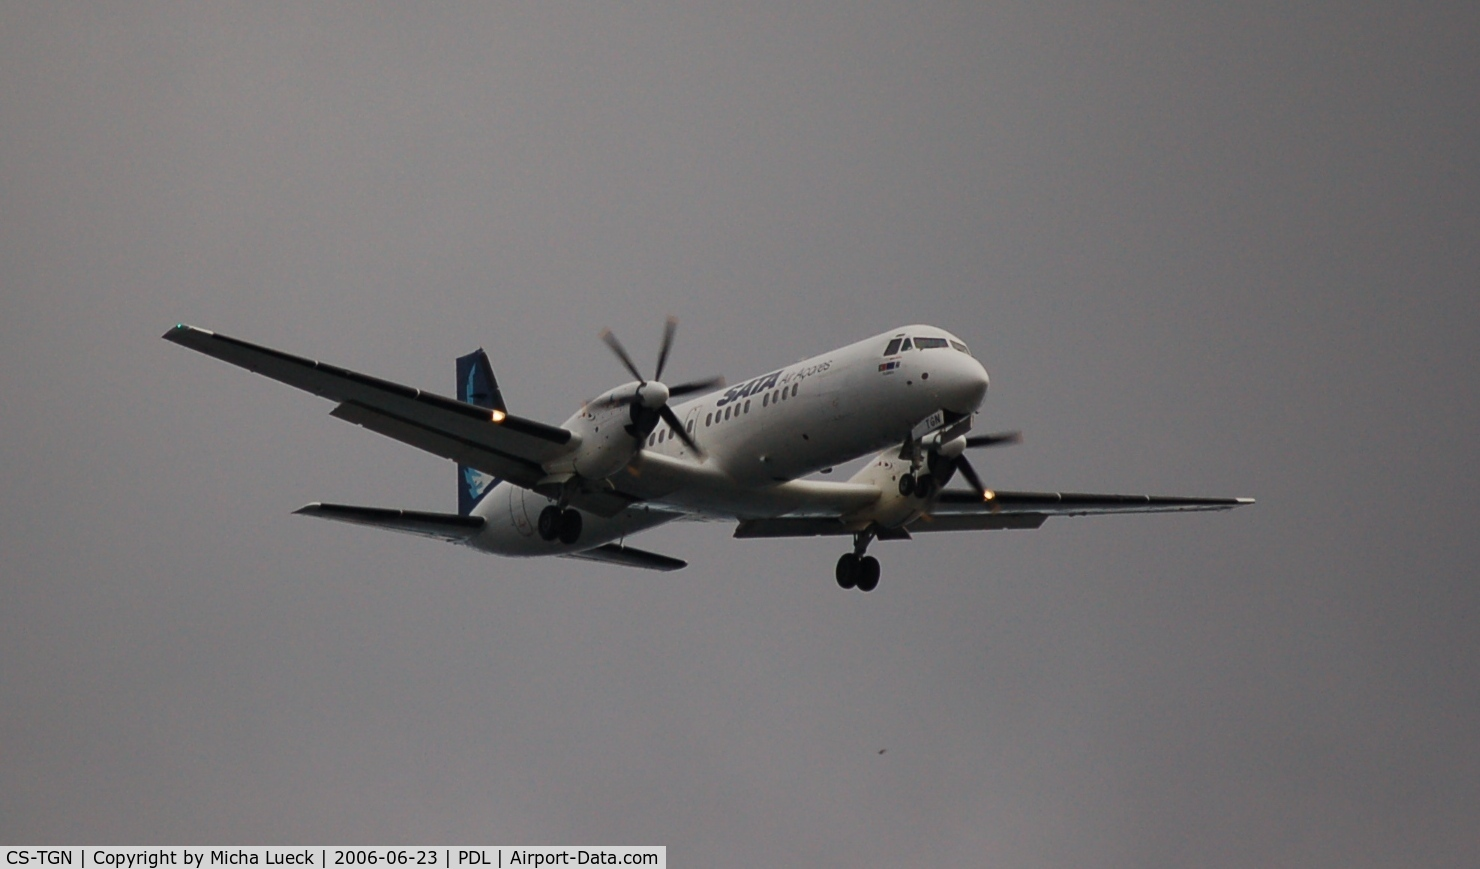 CS-TGN, 1990 British Aerospace ATP C/N 2031, On approach to Ponta Delgada/Azores